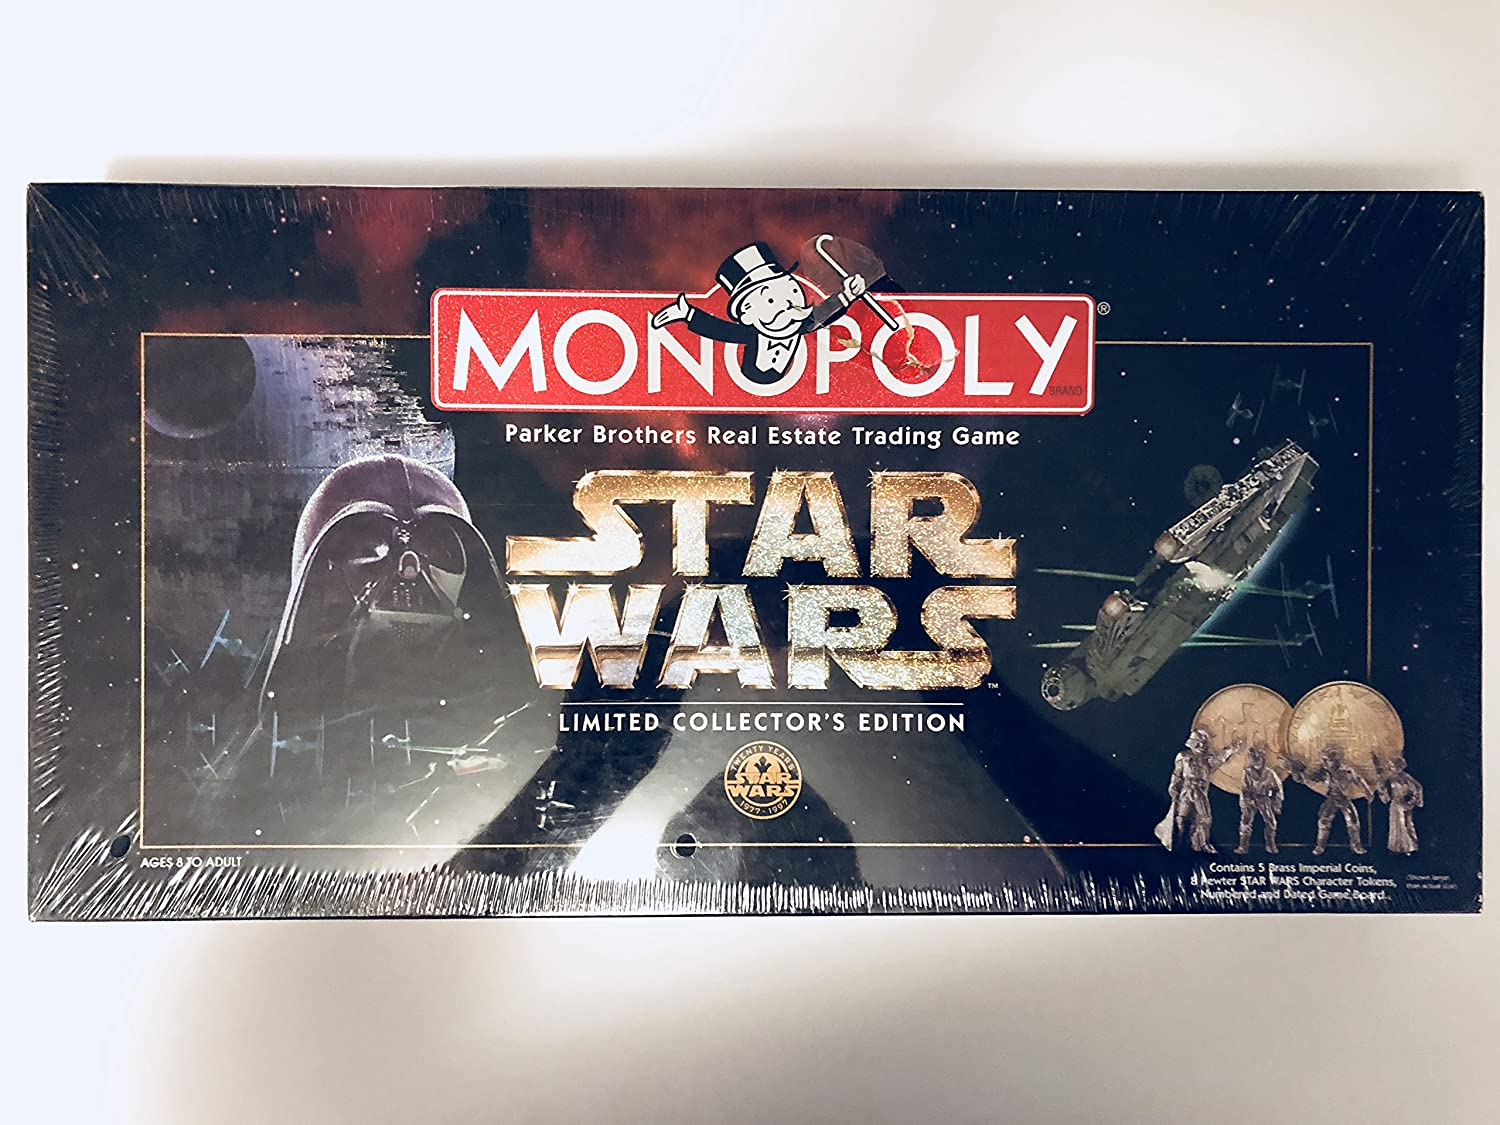 B000LQEL26 Monopoly 1997 Star Wars Monopoly Limited CollectorS 20Th Anniversary Edition 91CdeRip0cL.SL1500_